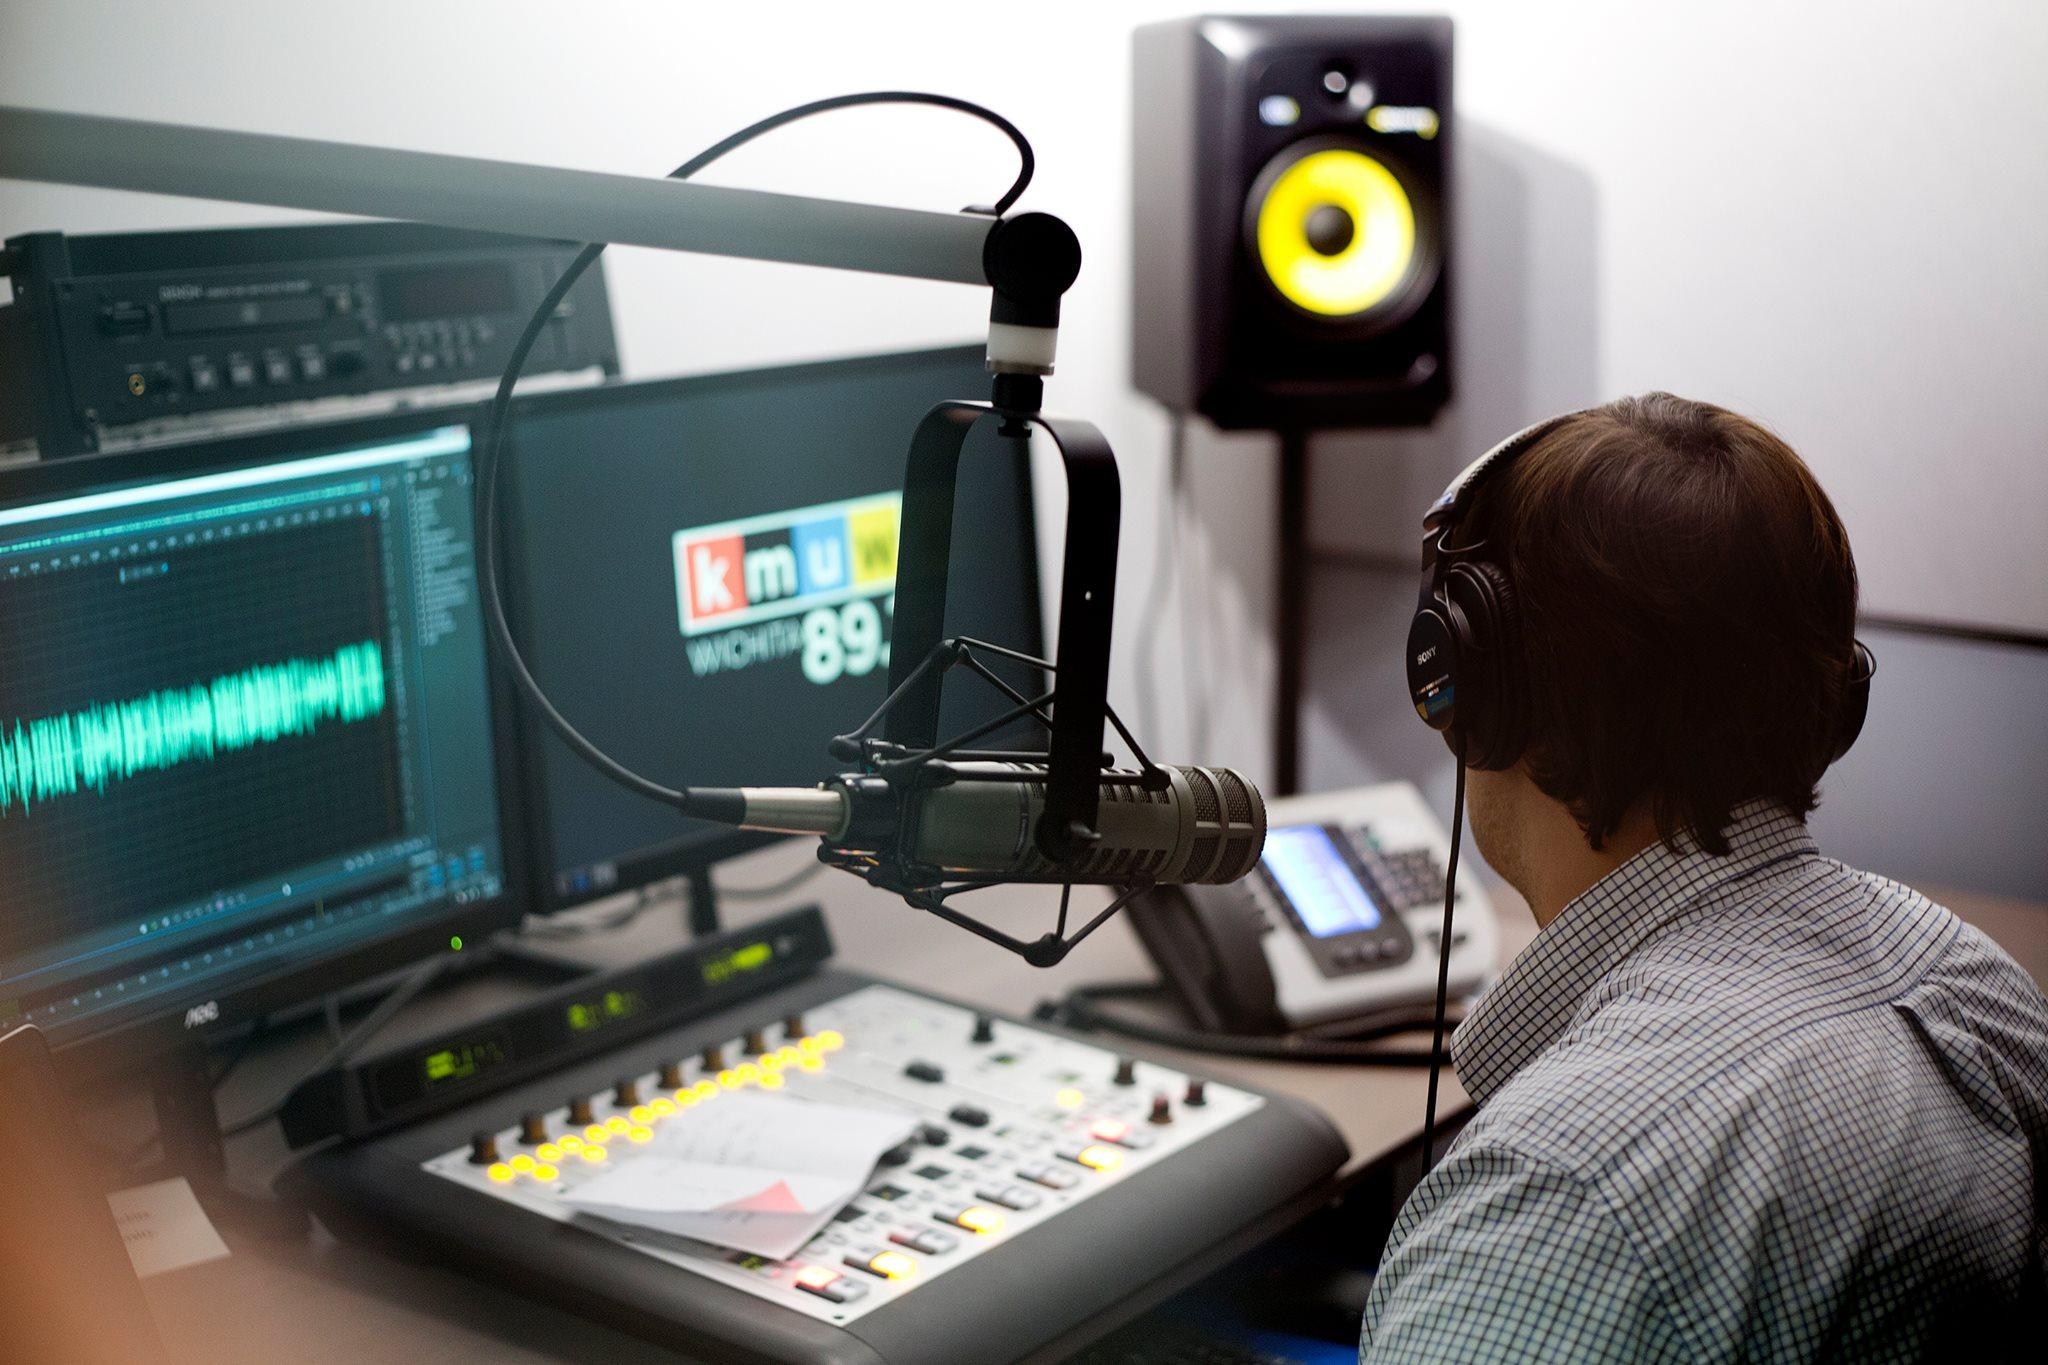 KMUW, NPR for Wichita, is seeking a passionate and dedicated news reporter for its on-air broadcasts and digital platform.